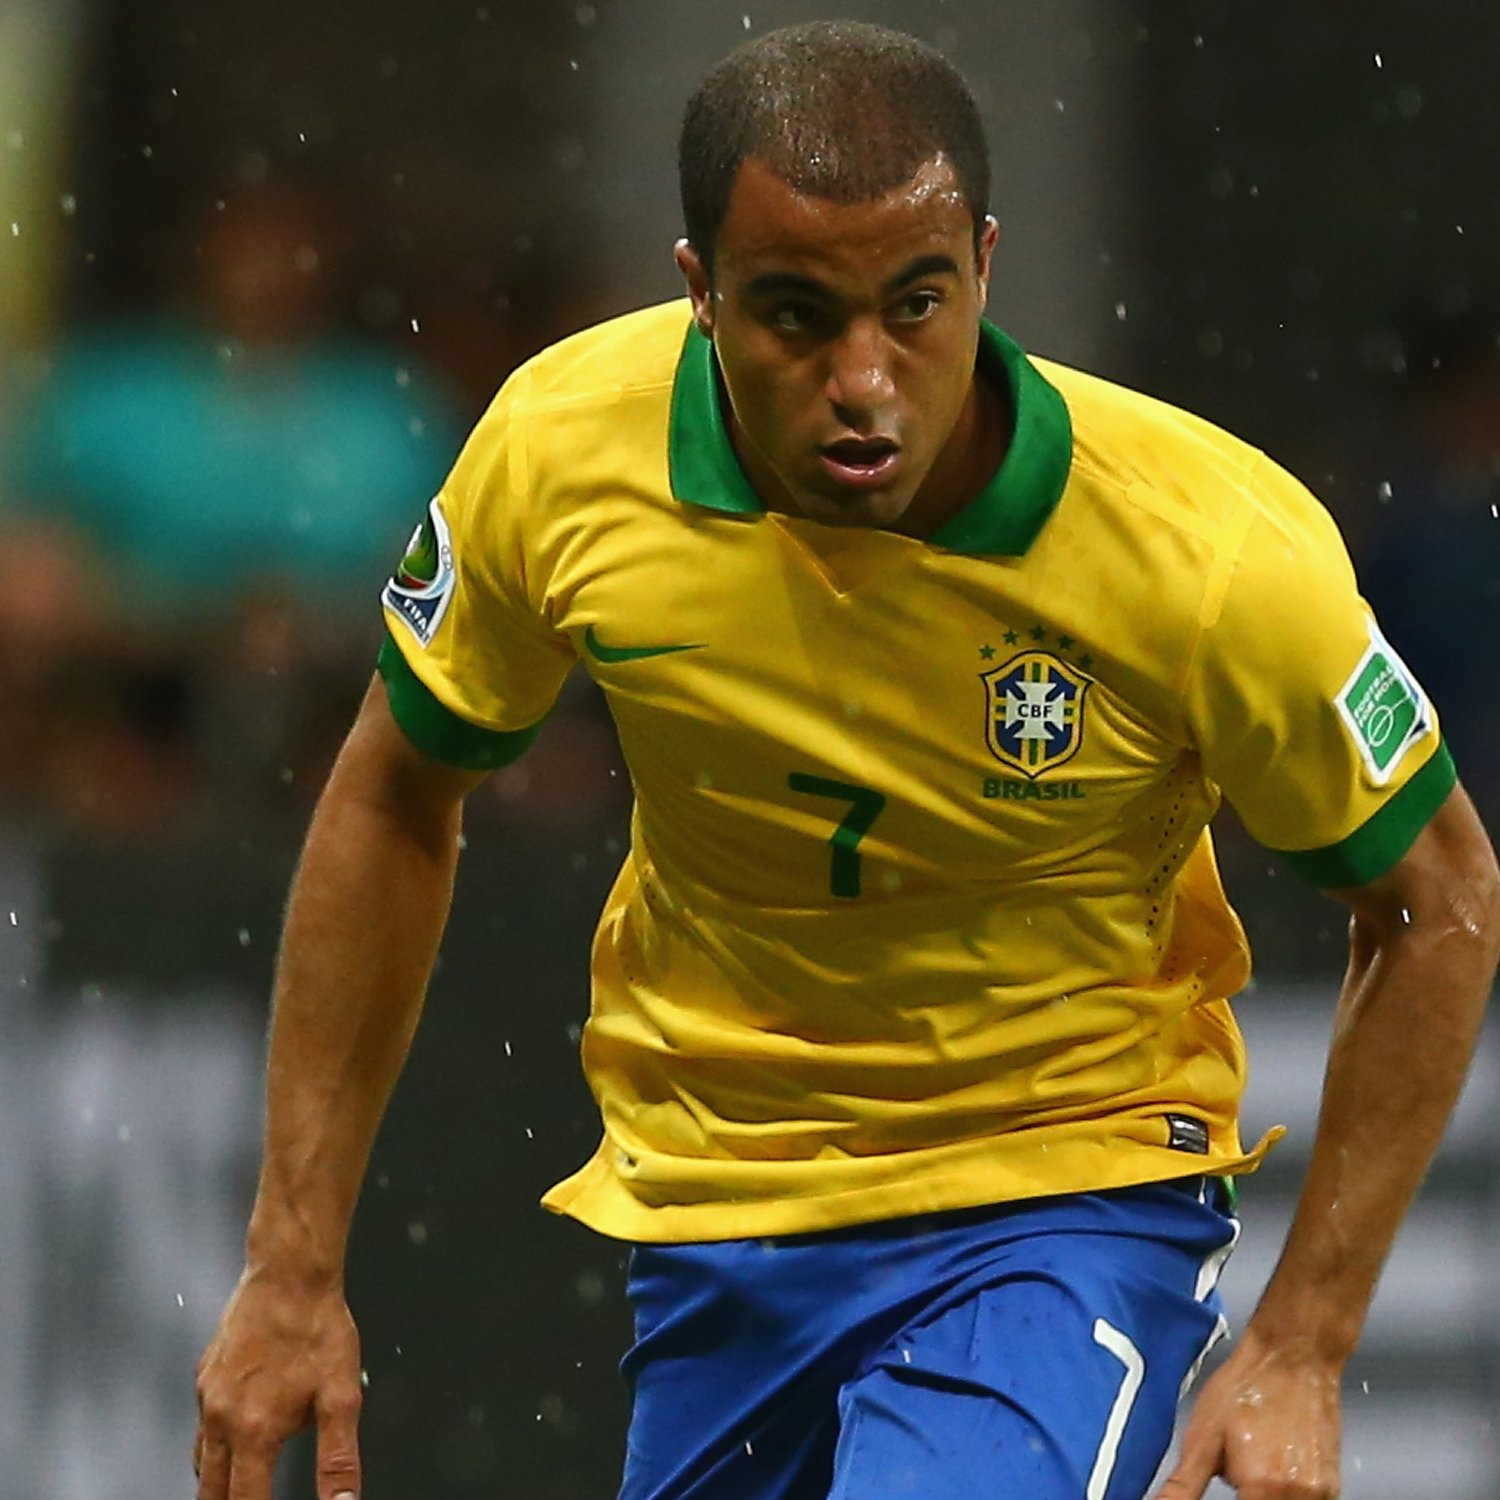 Lucas Moura To Miss Psg S Next Six Matches At Least After: Lucas Moura Injury: Updates On PSG And Brazil Star's Foot